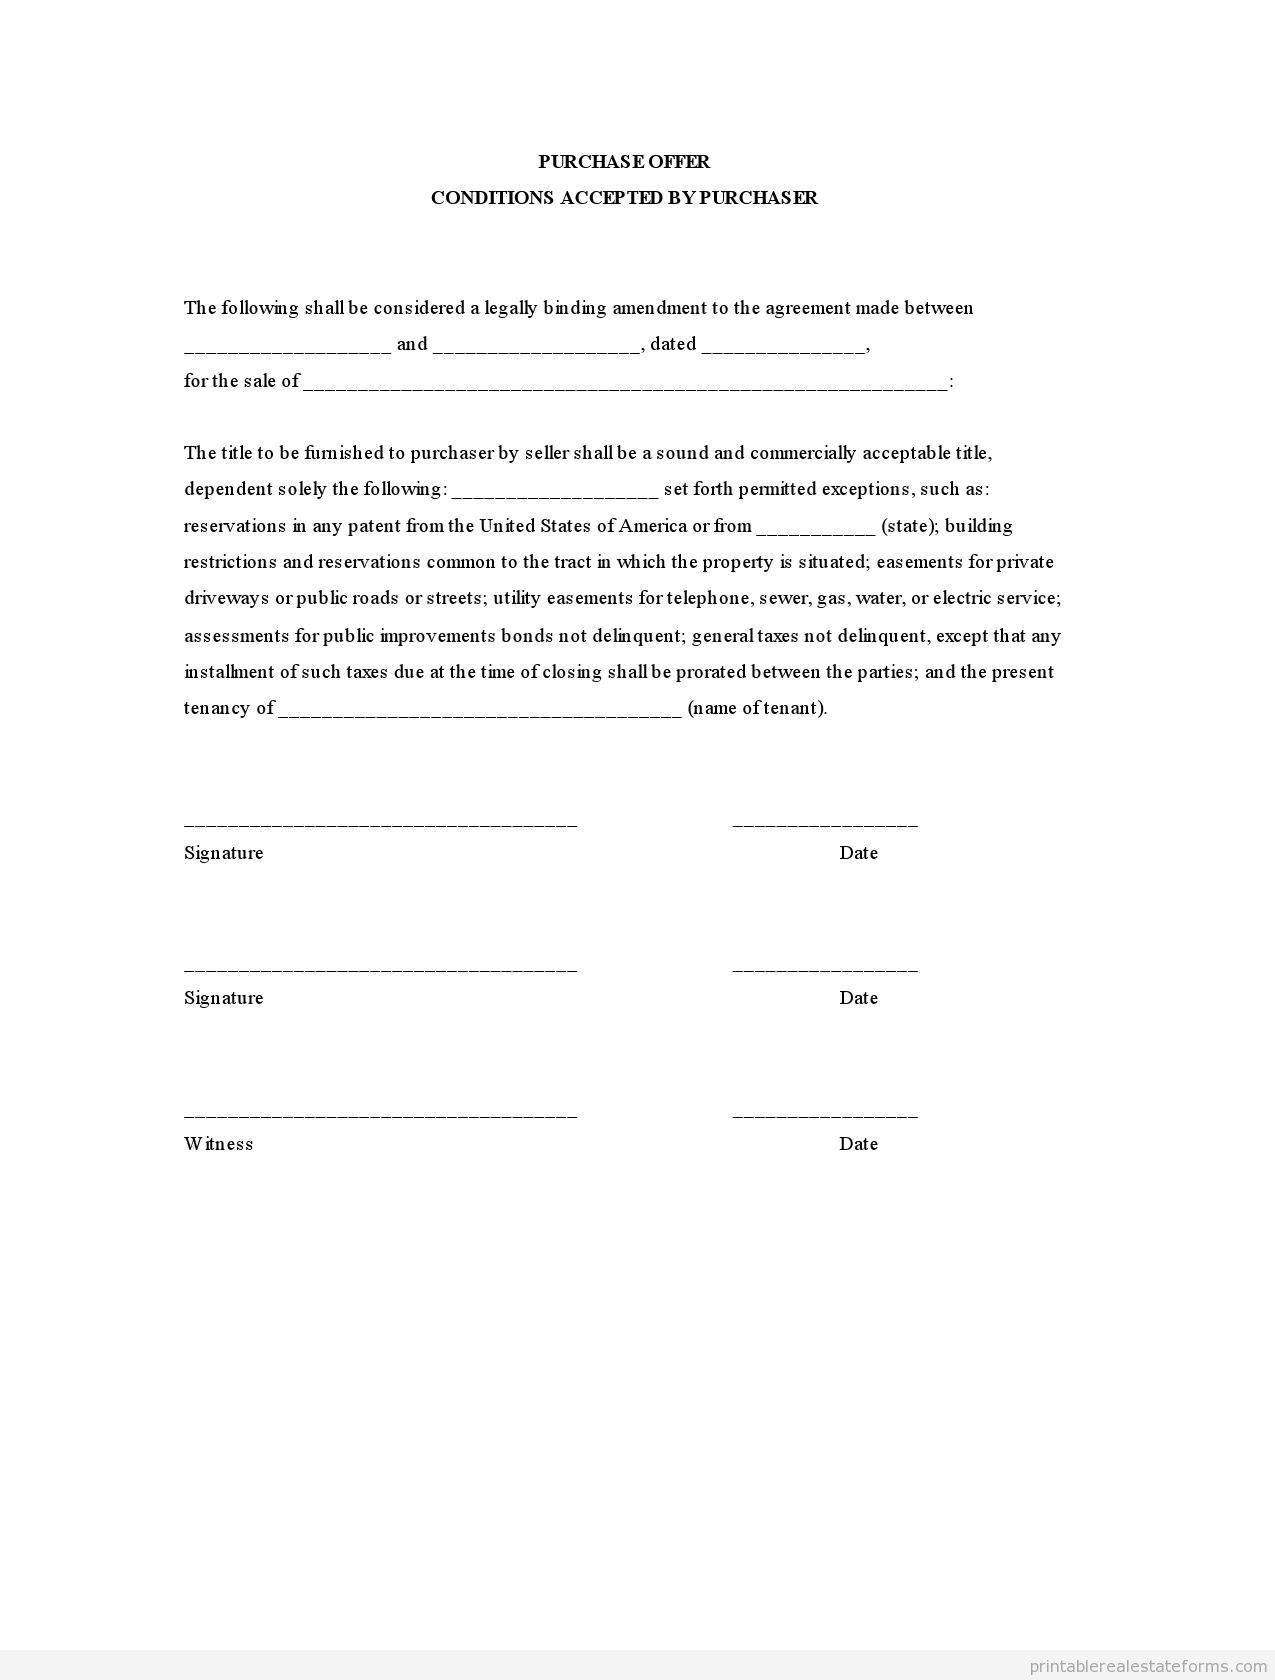 Get High Quality Printable Purchase Offer Form.PURCHASE